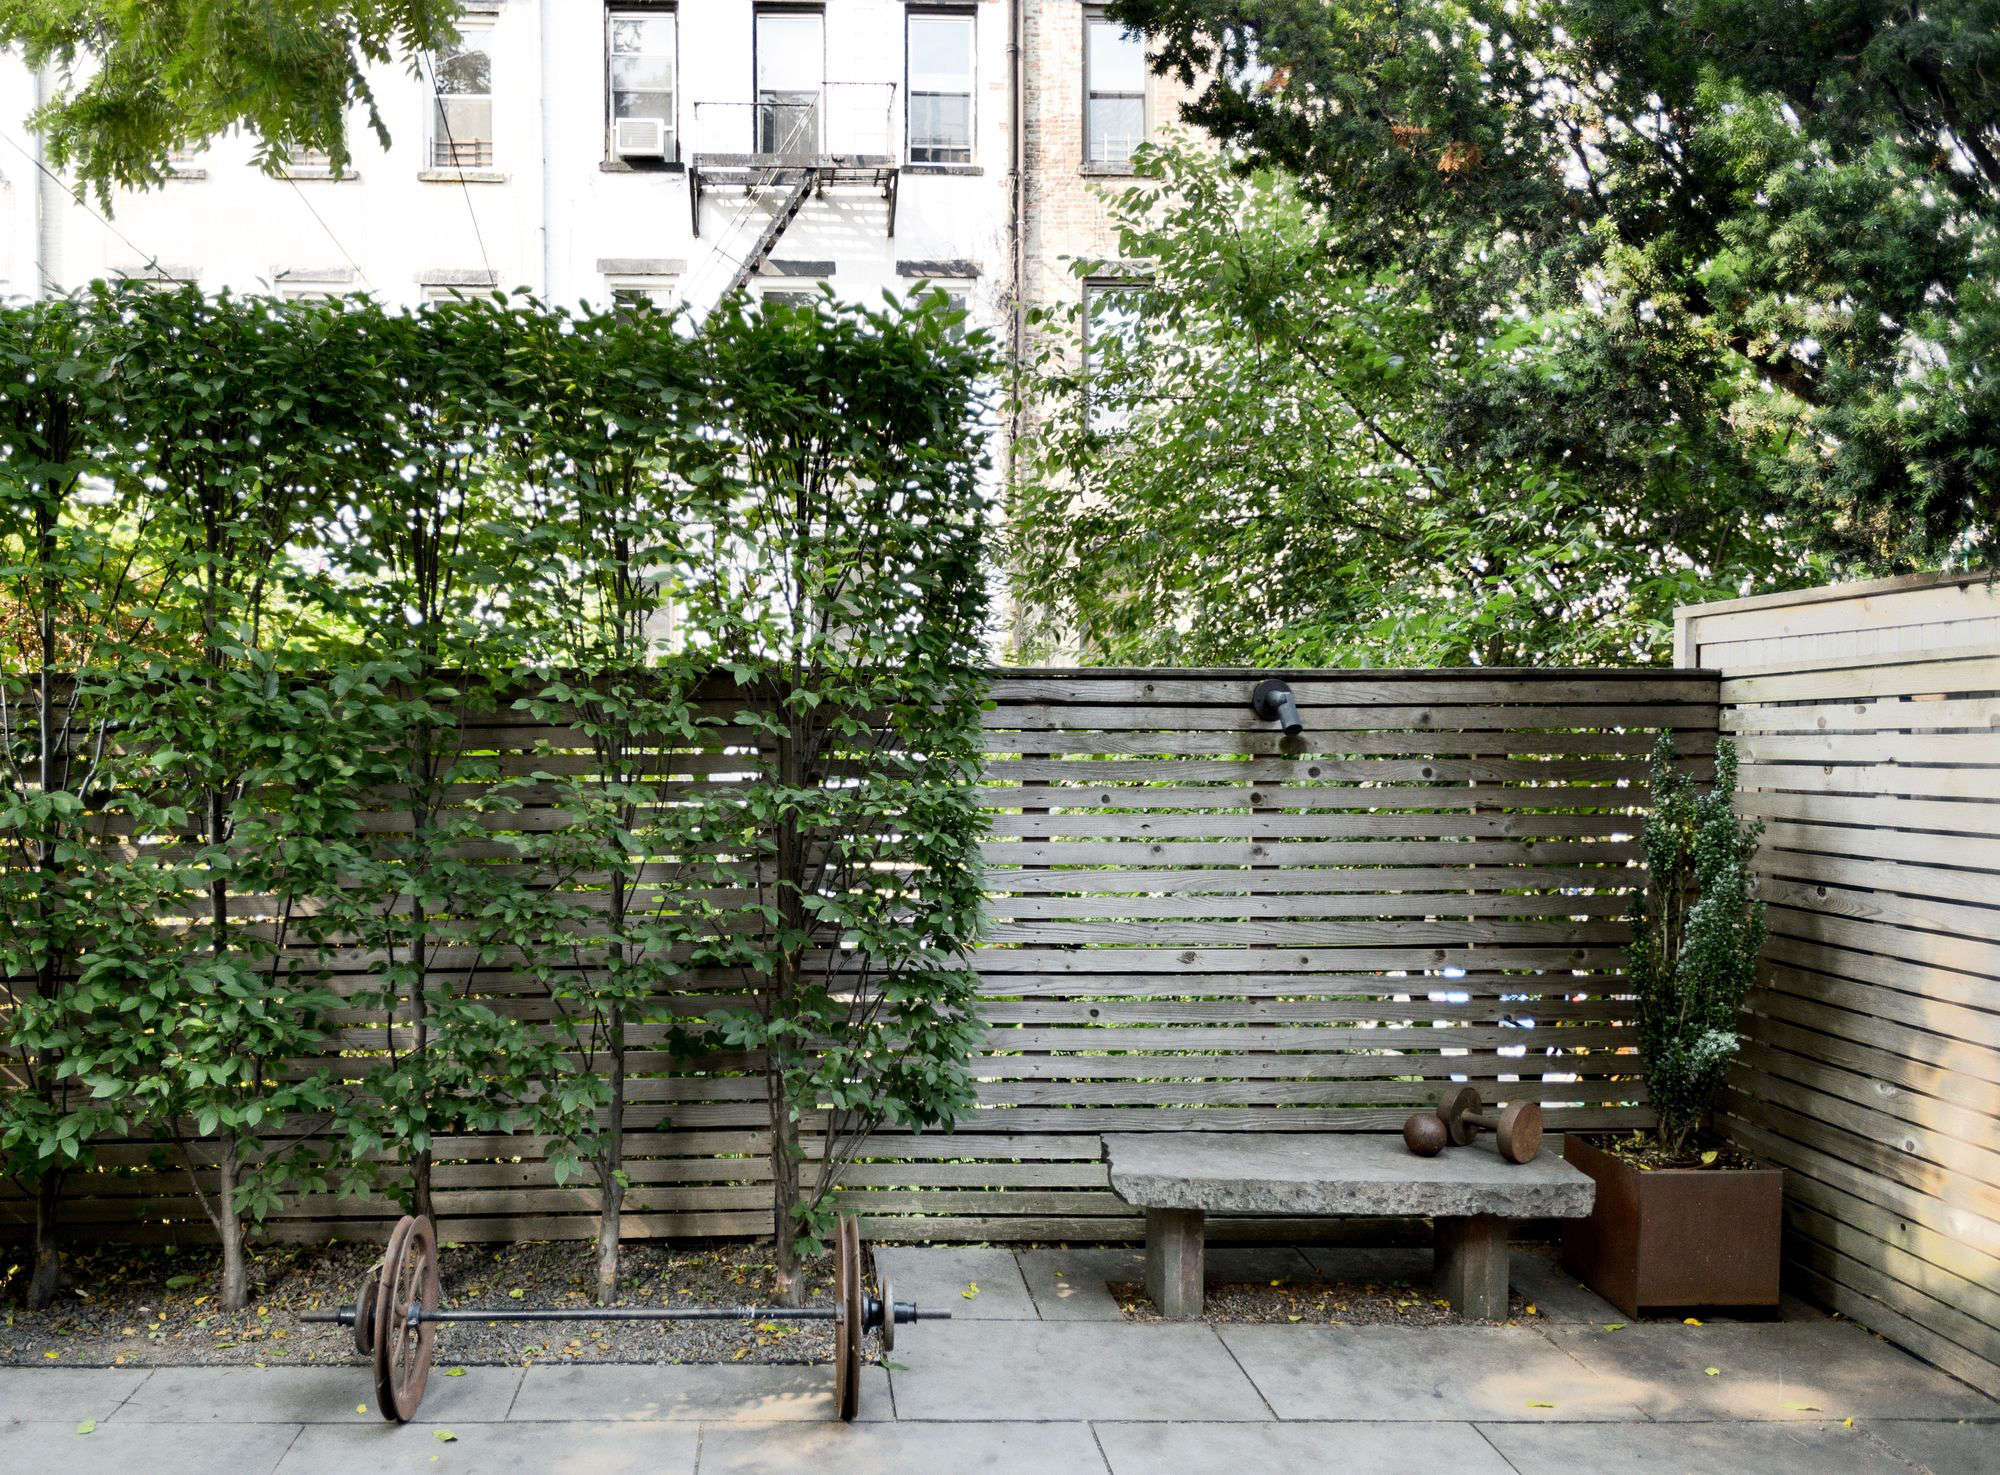 Privacy Screens Outdoor Garden Hacks 10 Ideas For Privacy Screens Gardenista